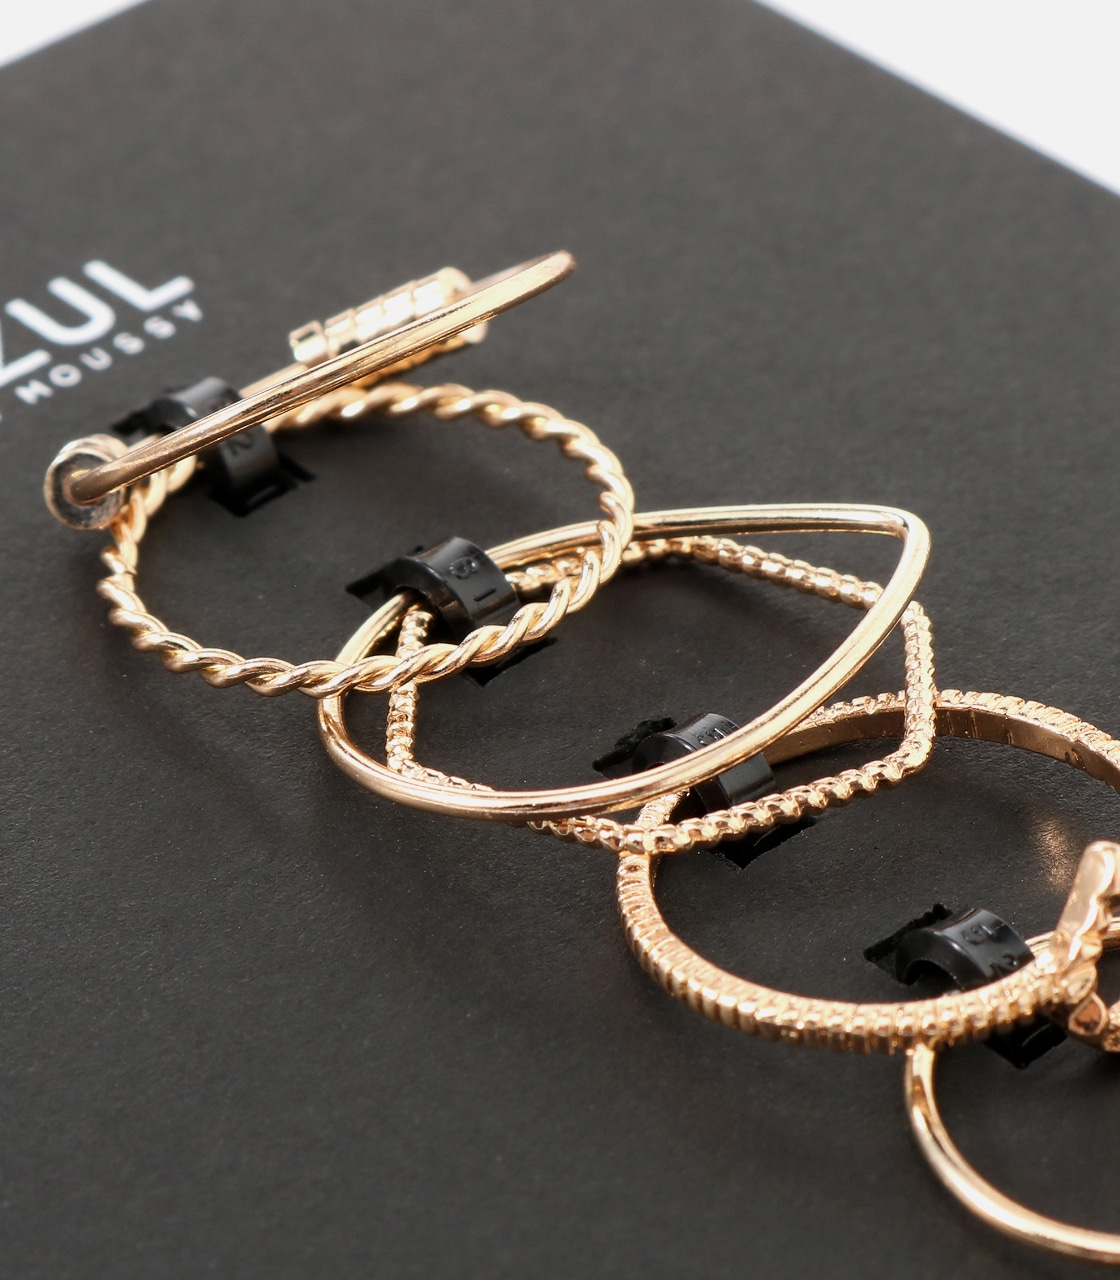 【AZUL BY MOUSSY】マルチモチーフ7本SETリング 詳細画像 L/GLD 5